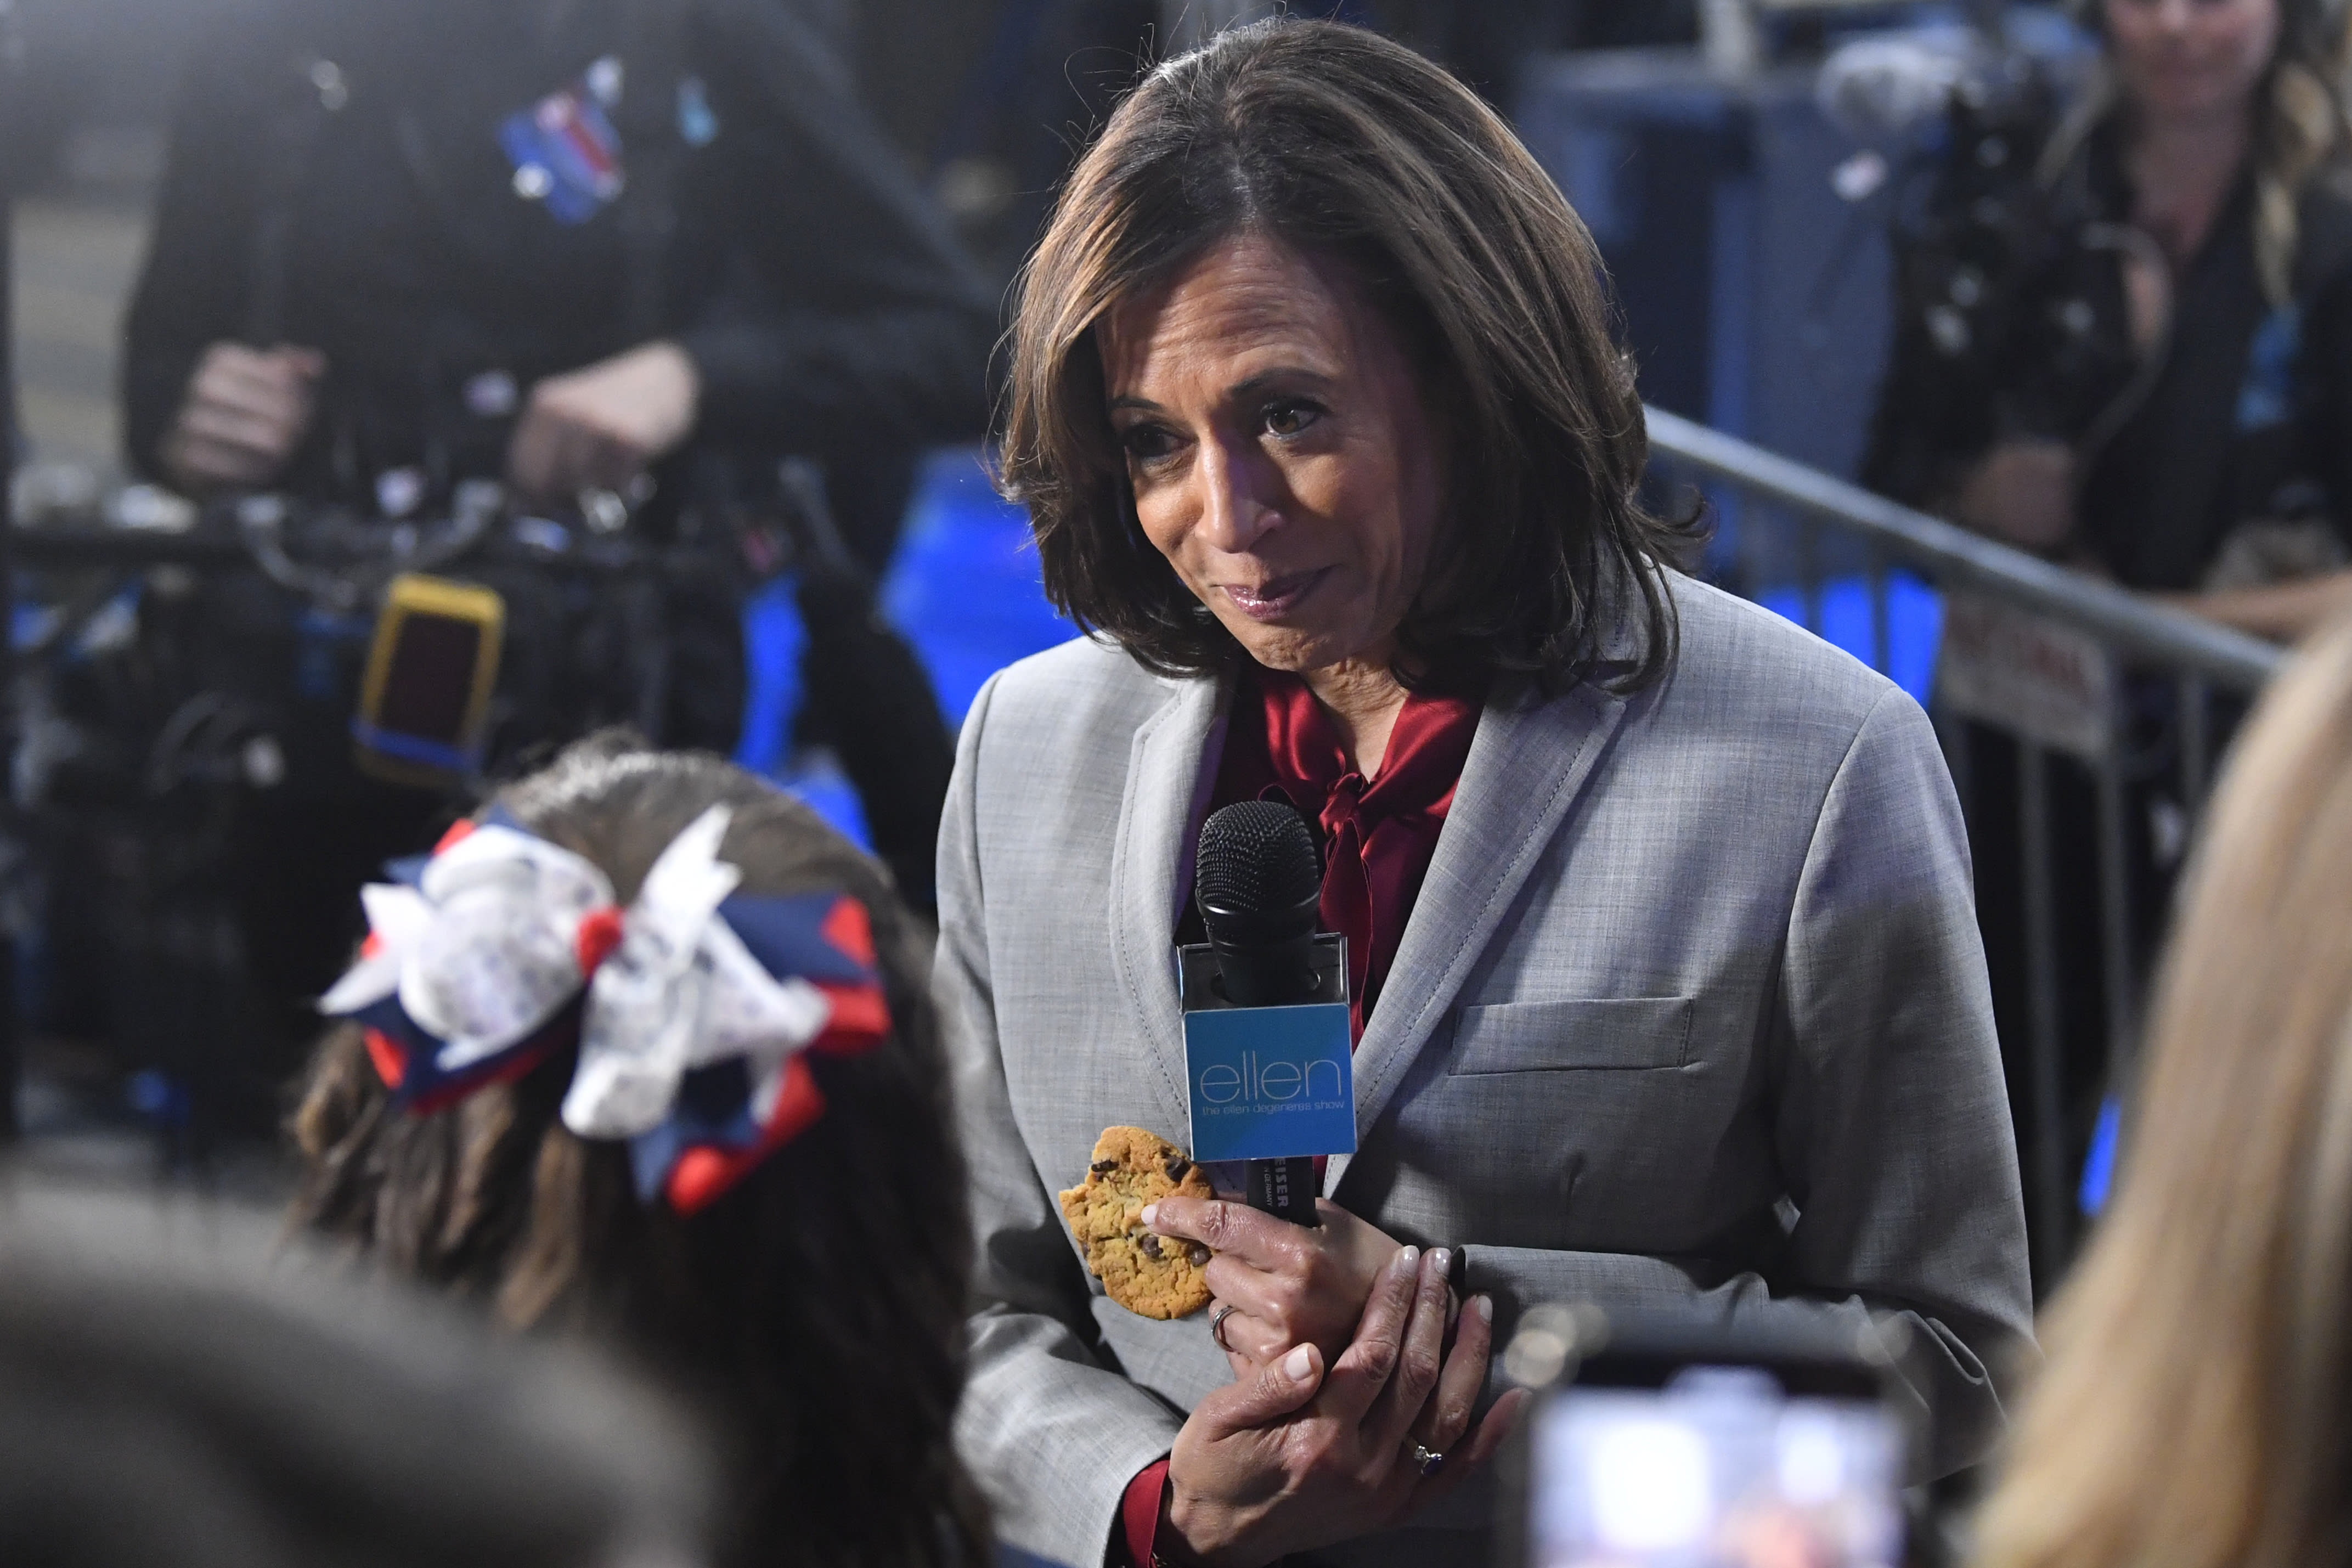 FILE - In this Nov. 21, 2019, file photo, then-Democratic presidential candidate Sen. Kamala Harris, D-Calif., listens to a question in the spin room after a Democratic presidential primary debate in Atlanta. (AP Photo/John Amis, File)